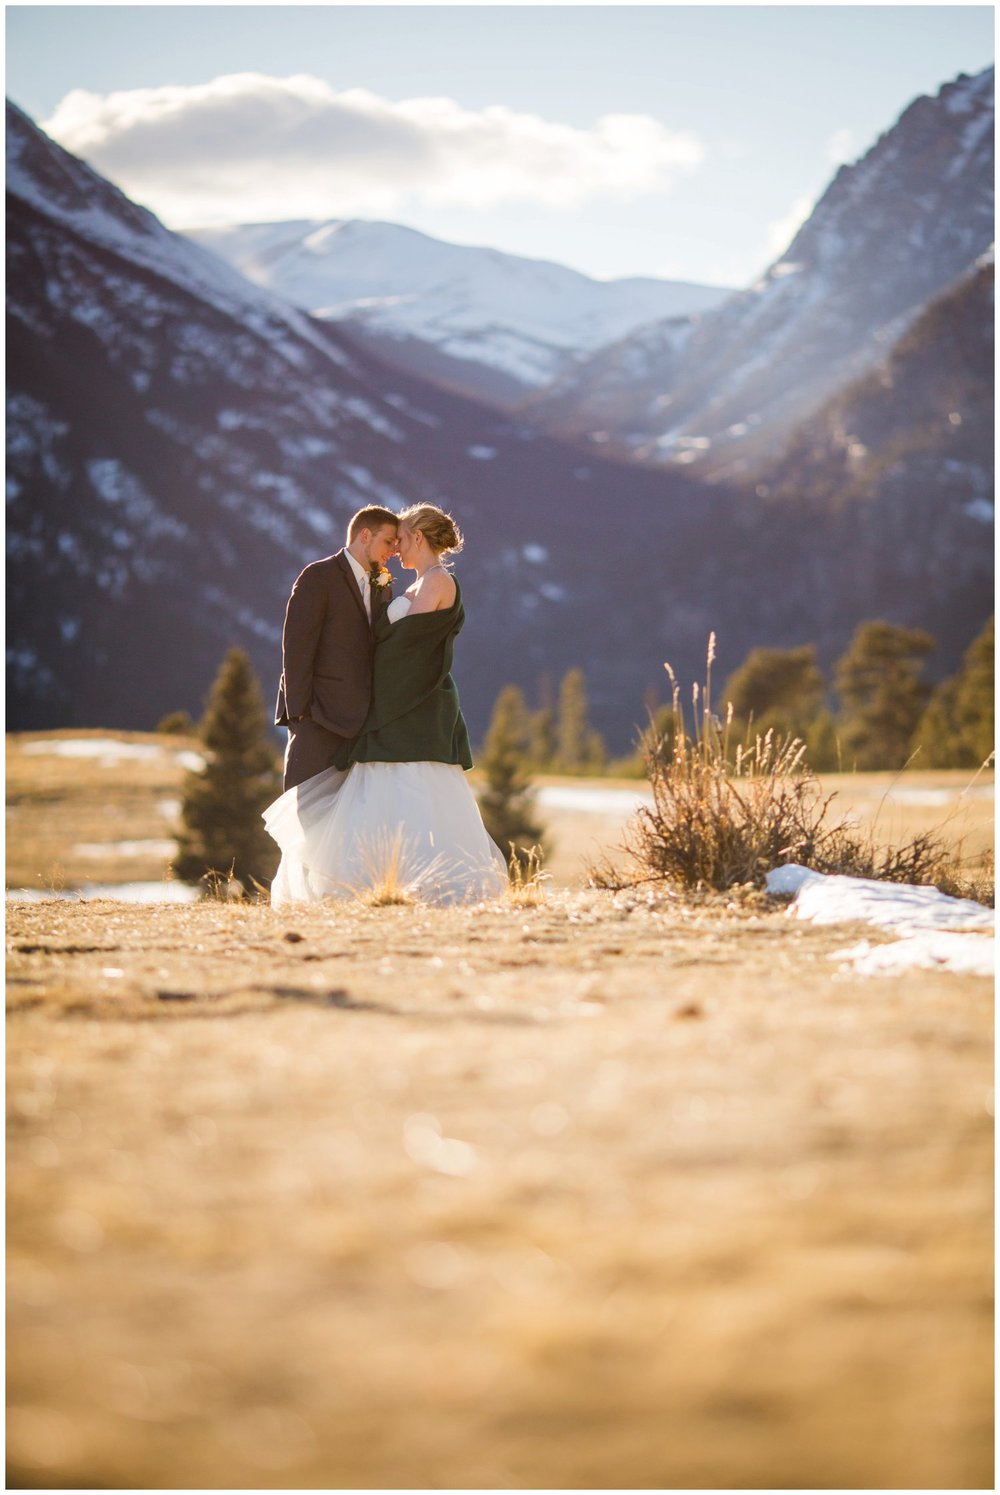 Rocky mountain national Park wedding photo of Bride and Groom